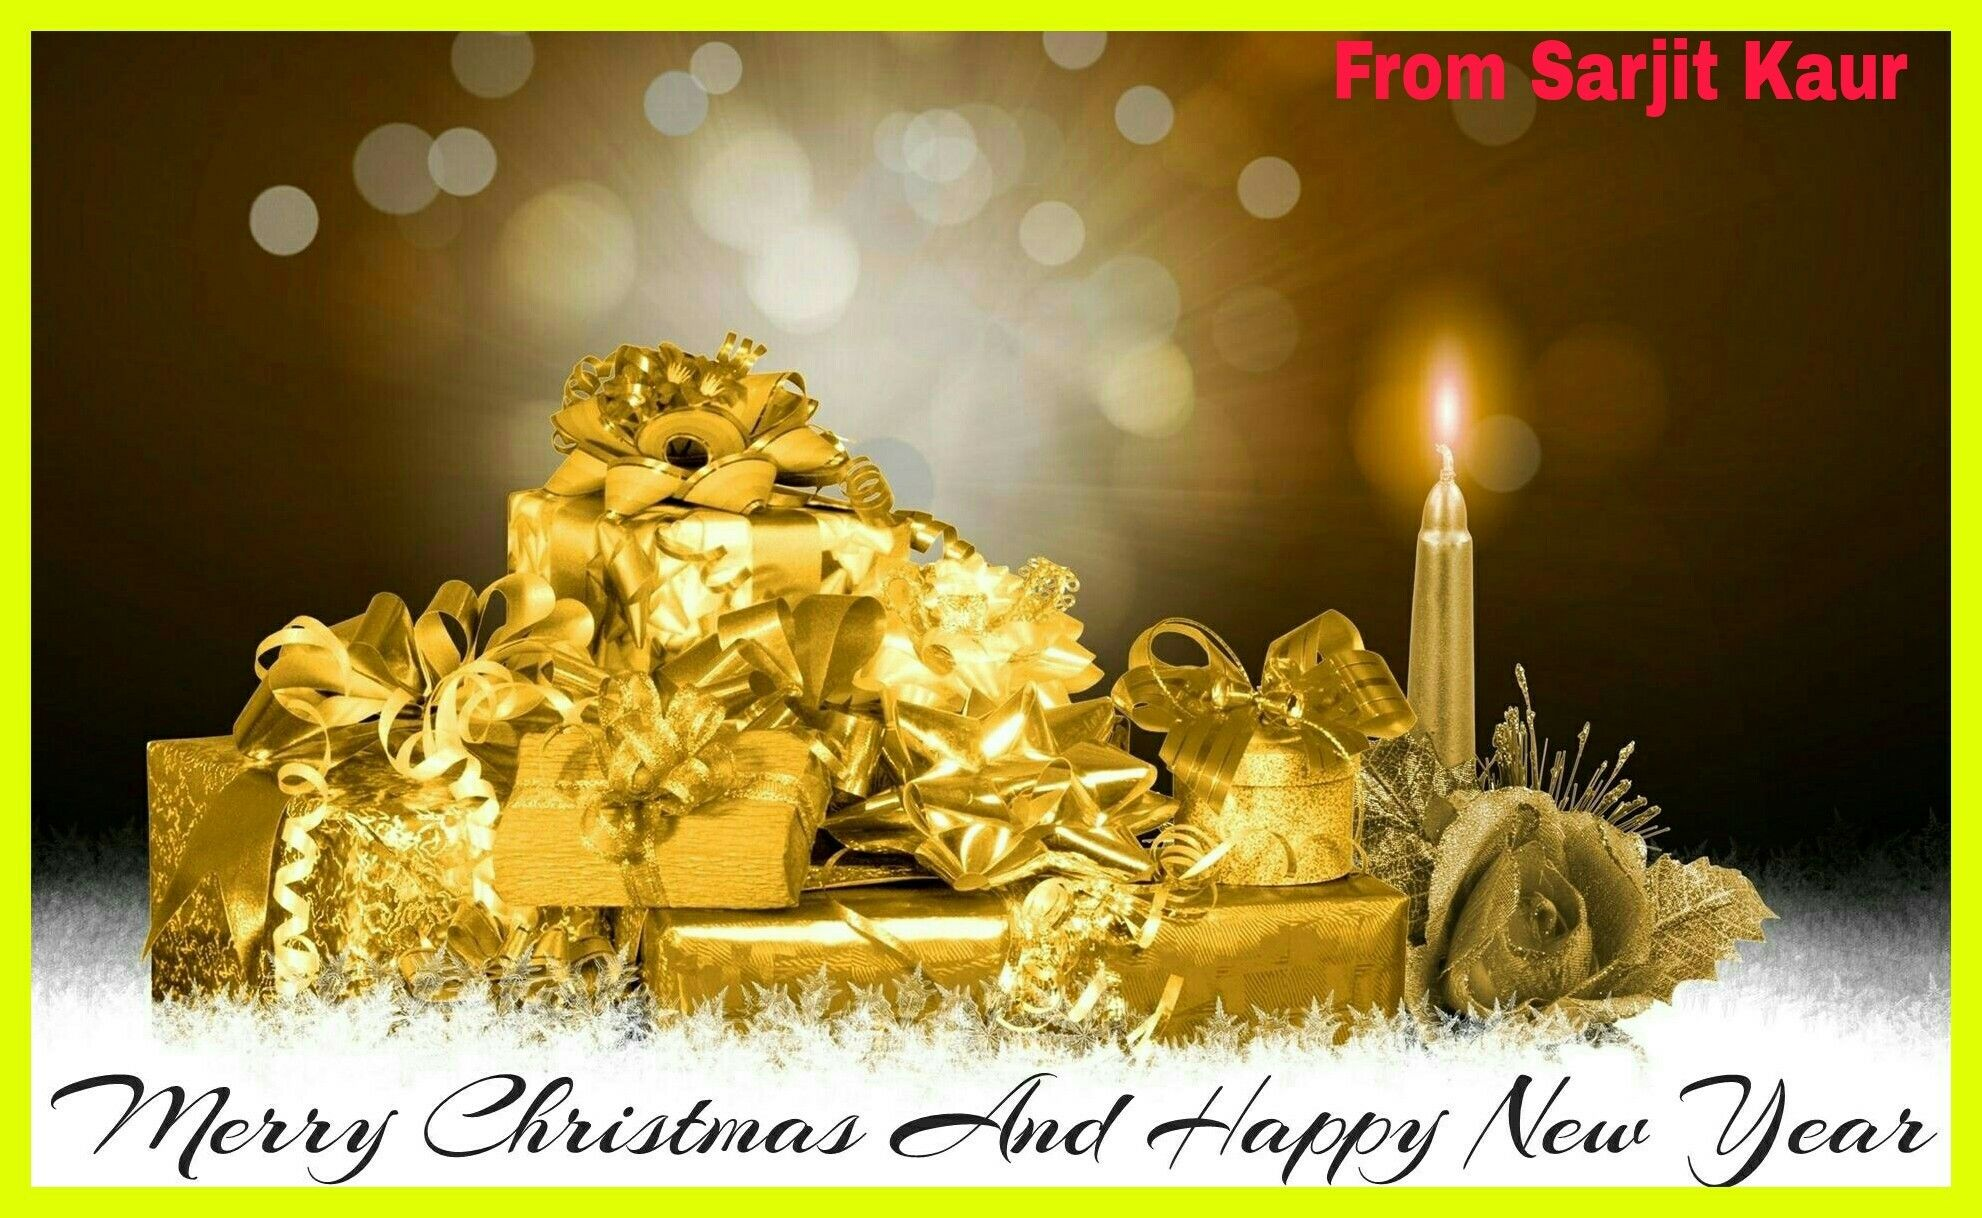 Pin By Sarjit On Merry Christmas Happy New Year Merry Christmas Wallpaper Christmas Wallpaper Merry Christmas And Happy New Year